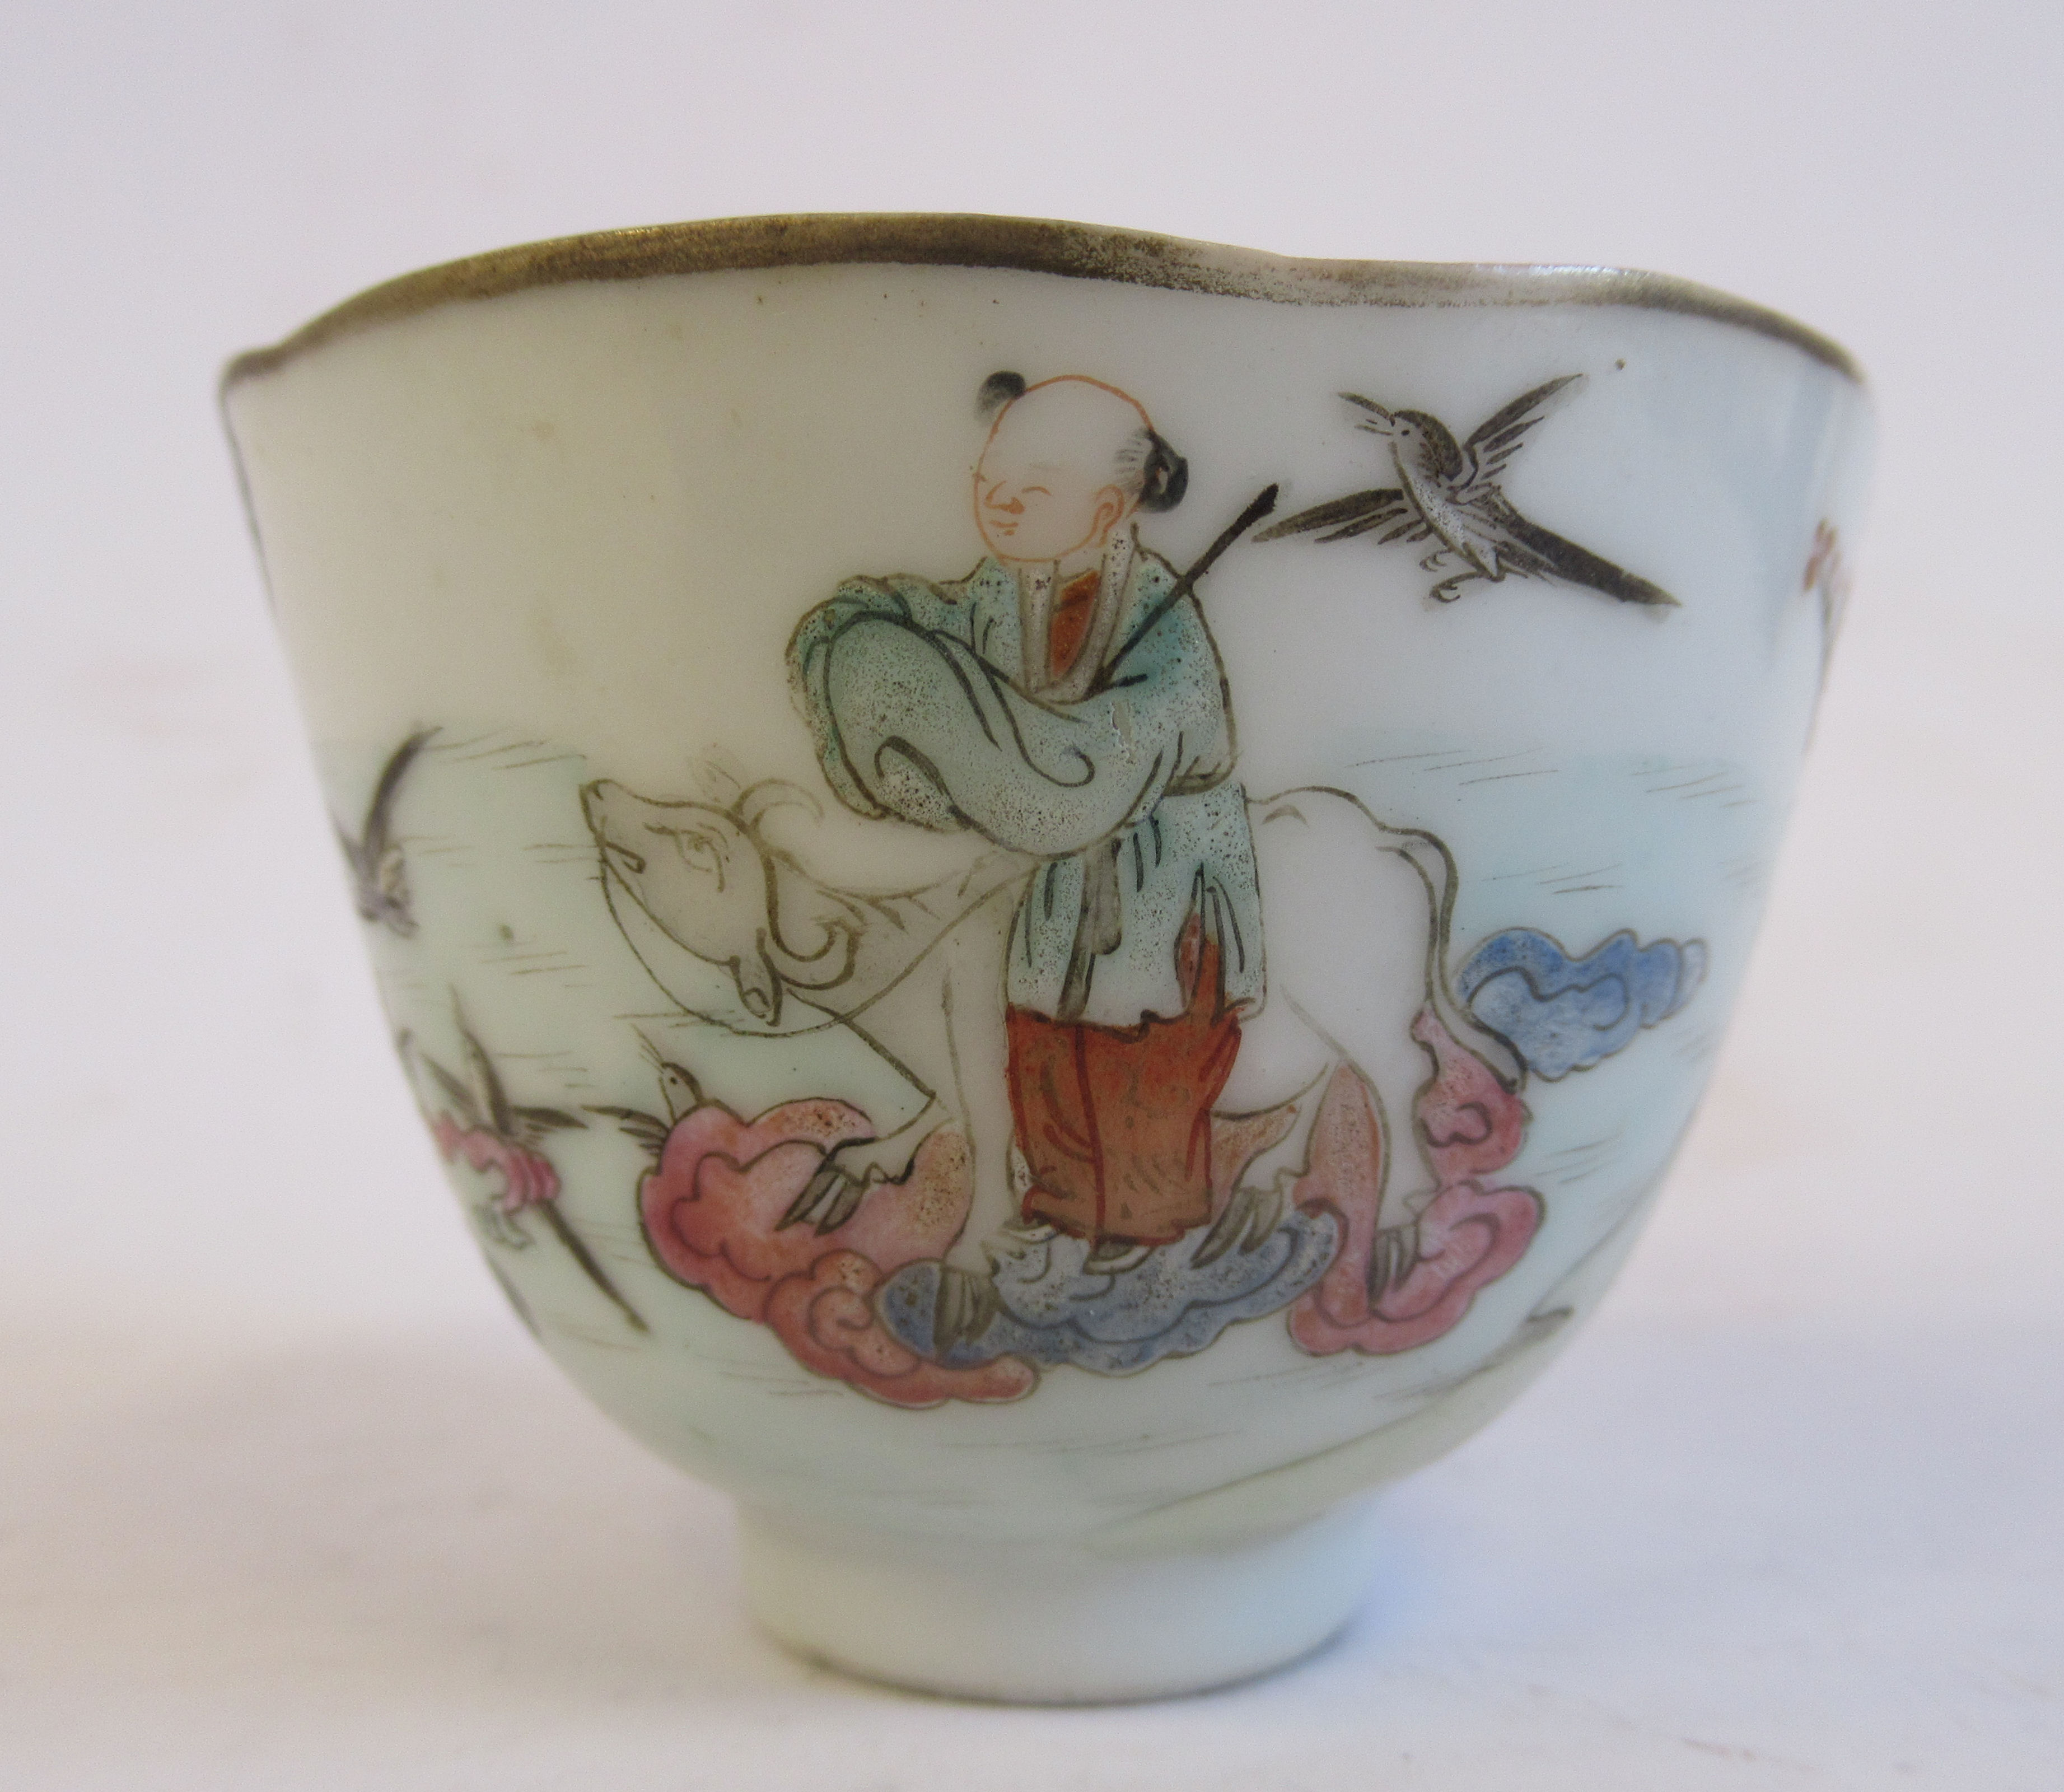 """A 19thC Chinese porcelain footed wine cup, decorated in famille rose with figures and birds 1.75""""h - Image 2 of 7"""